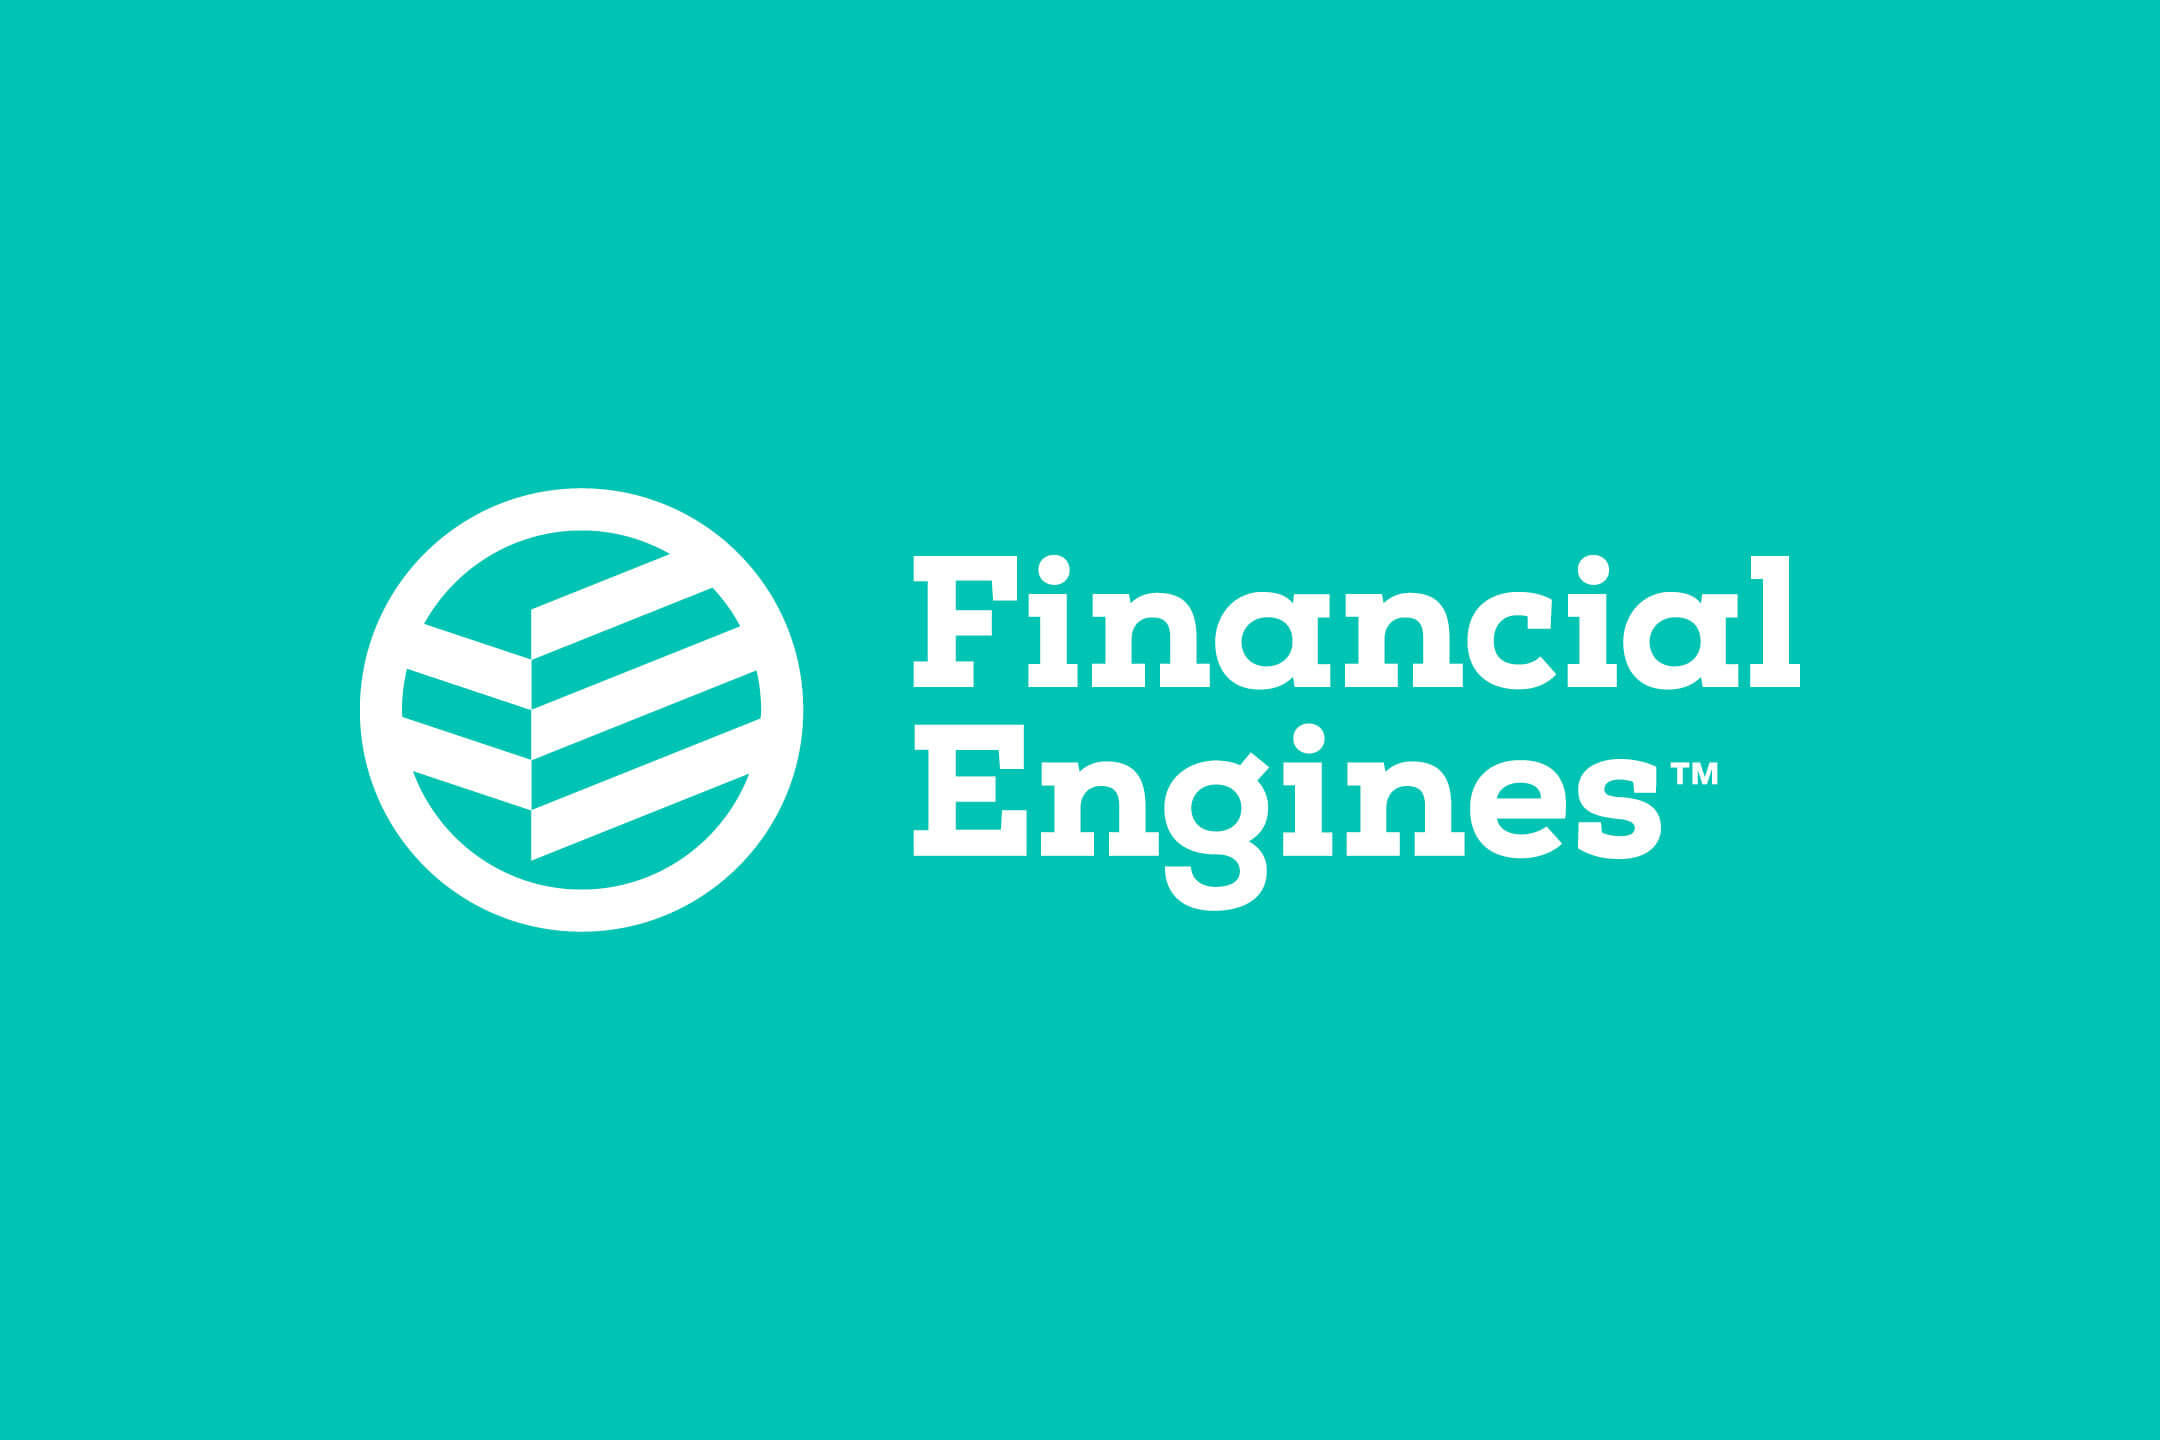 Financial Engines logo